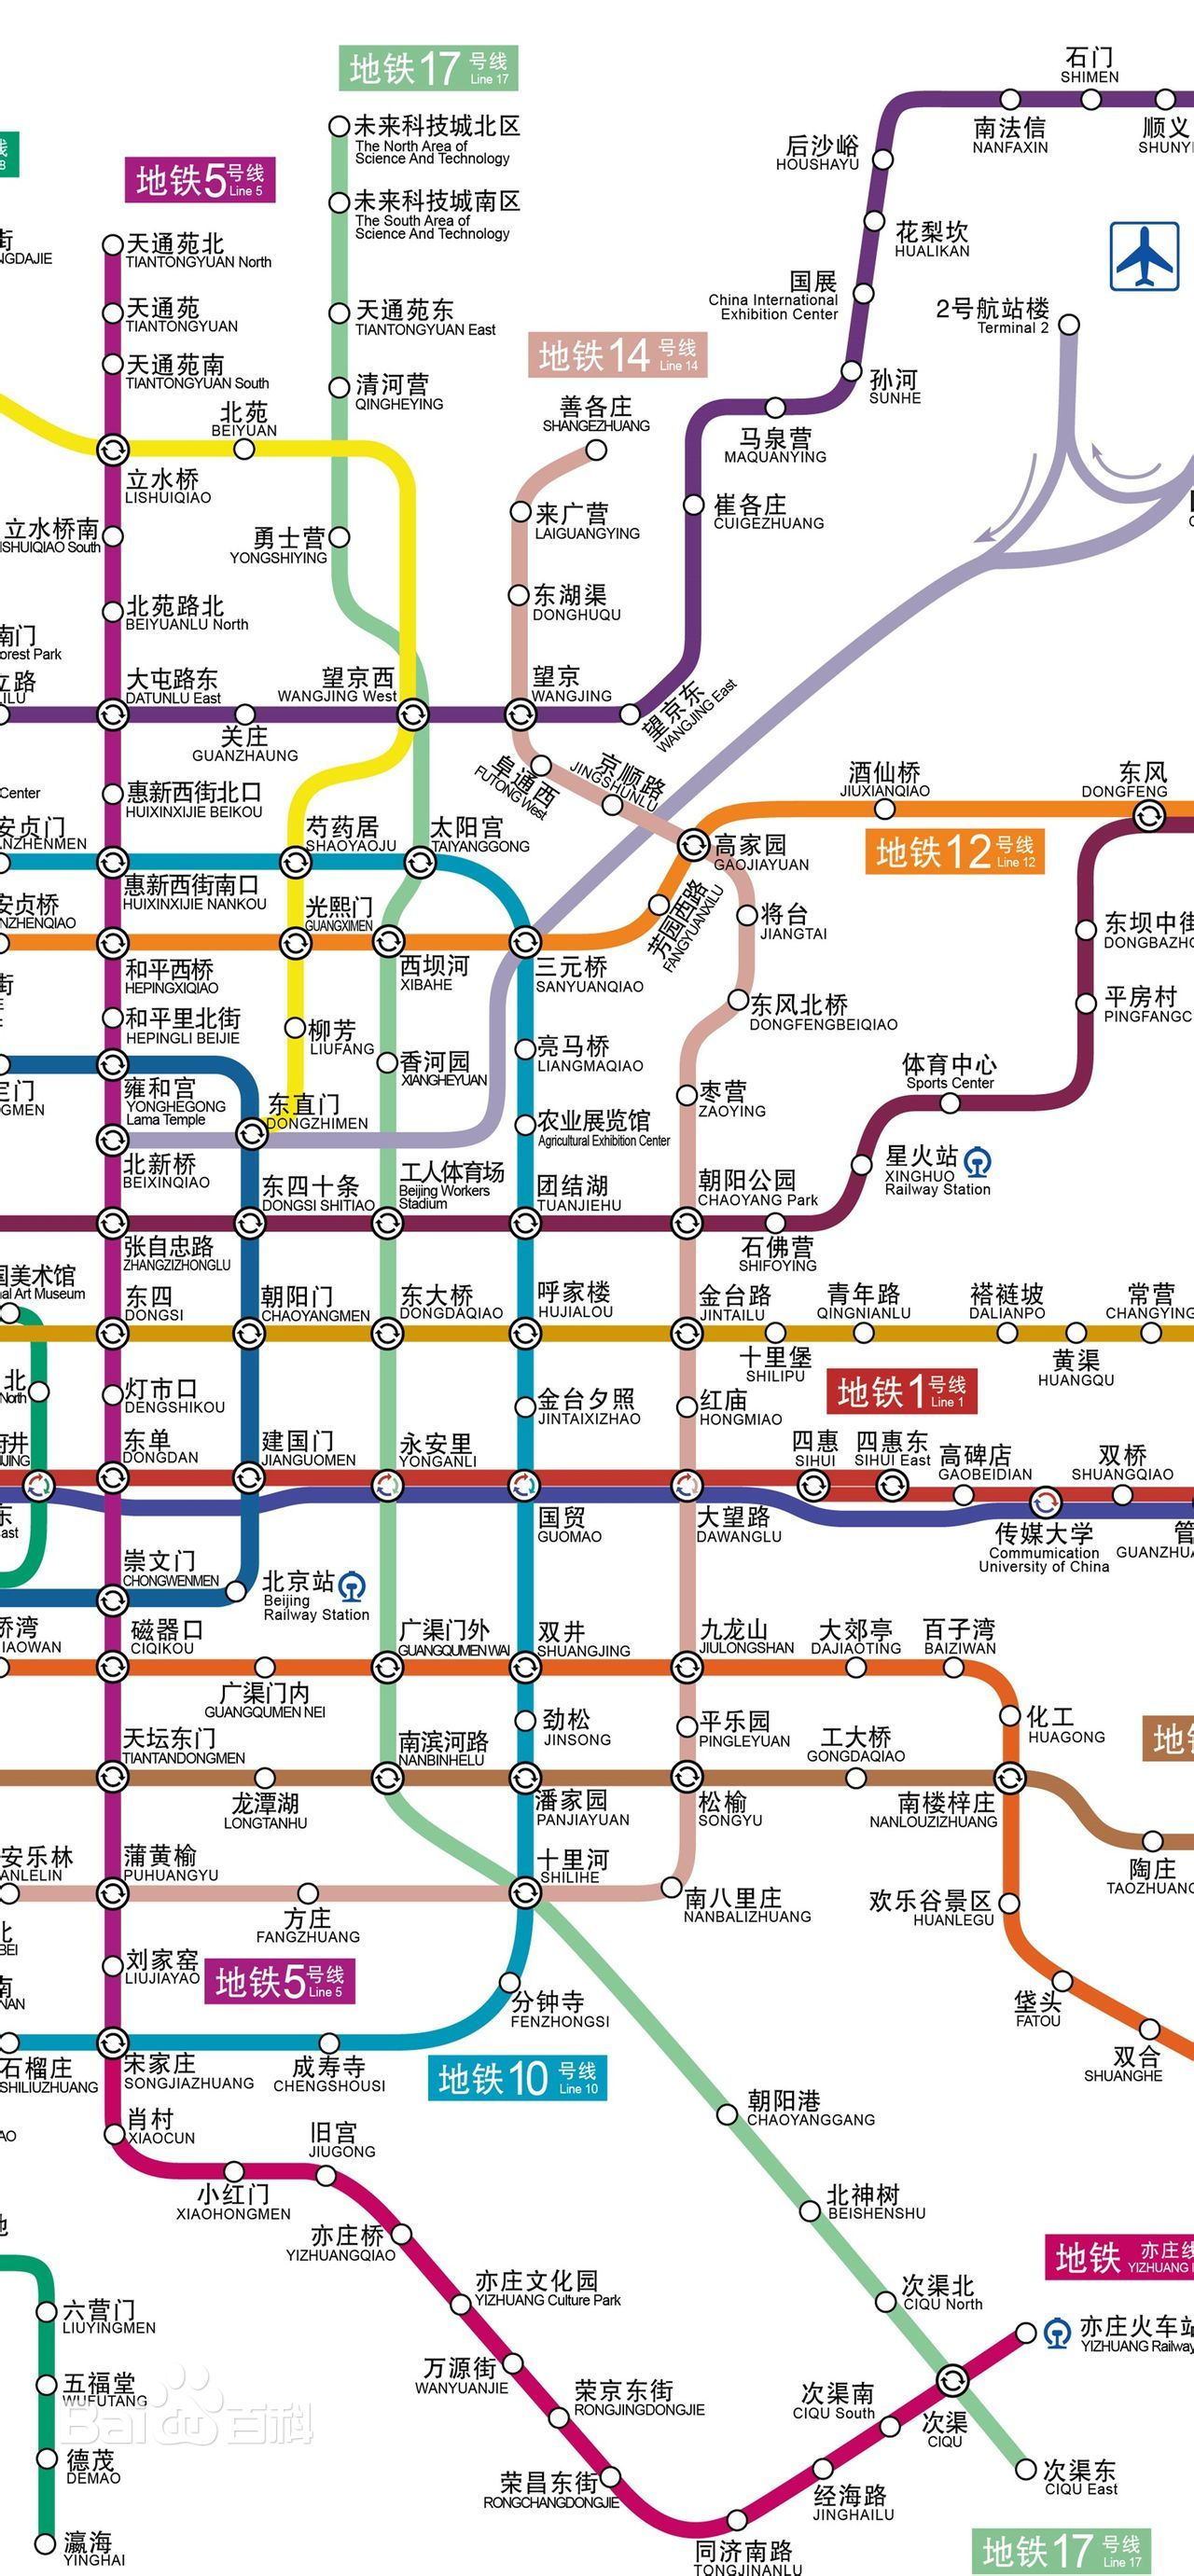 City Approves Sanlitun Station on Line 17: Report